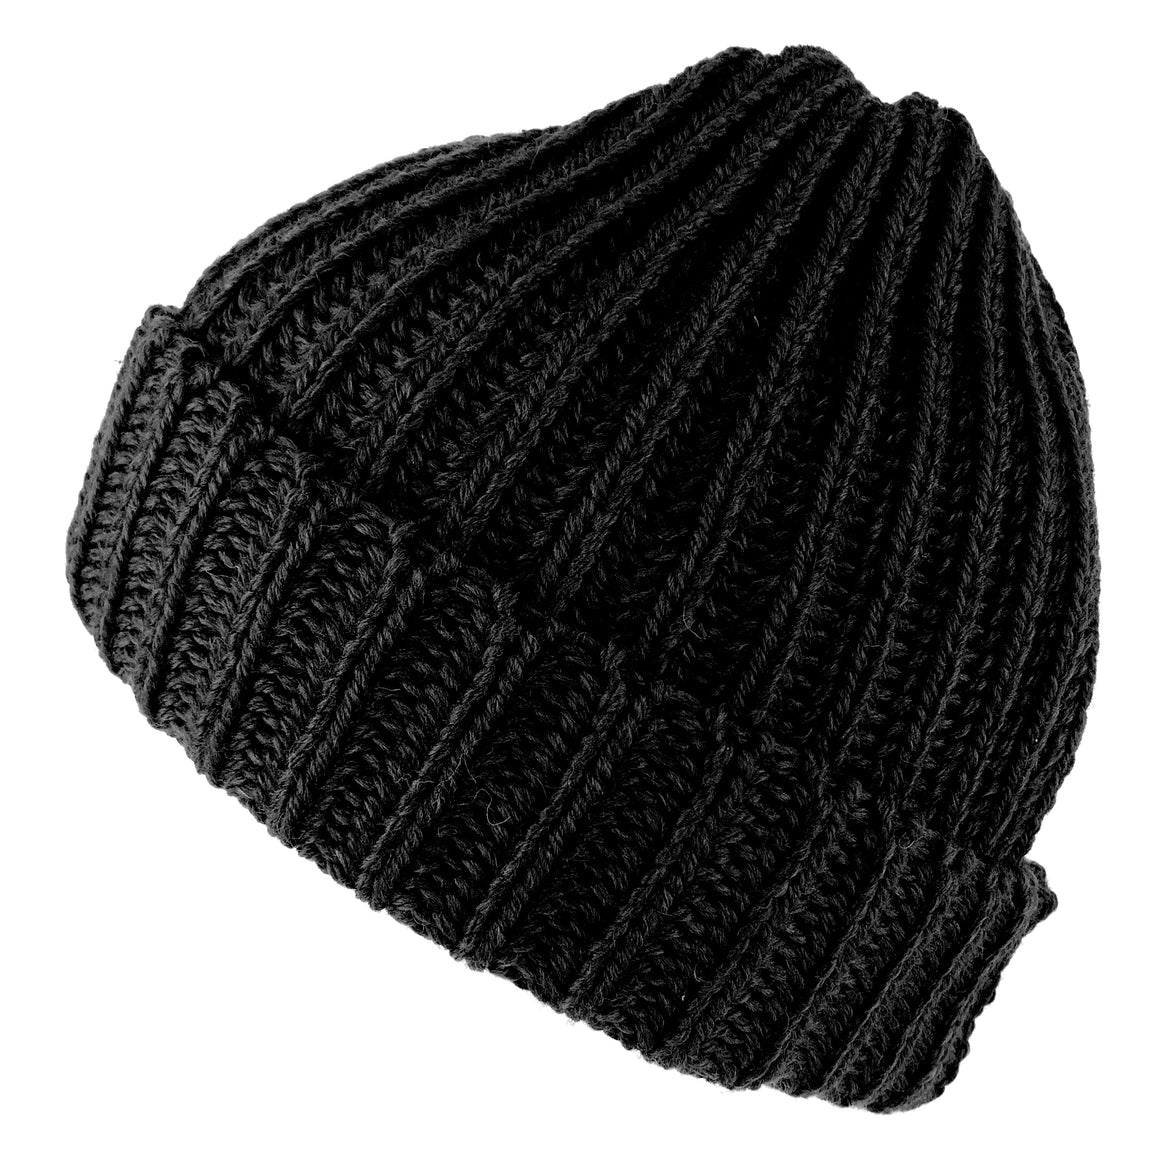 0c7e24d4ed2 Wool Beanie Highland 2000 Fisherman s Hat Merino Wool Chunky Knit - Black